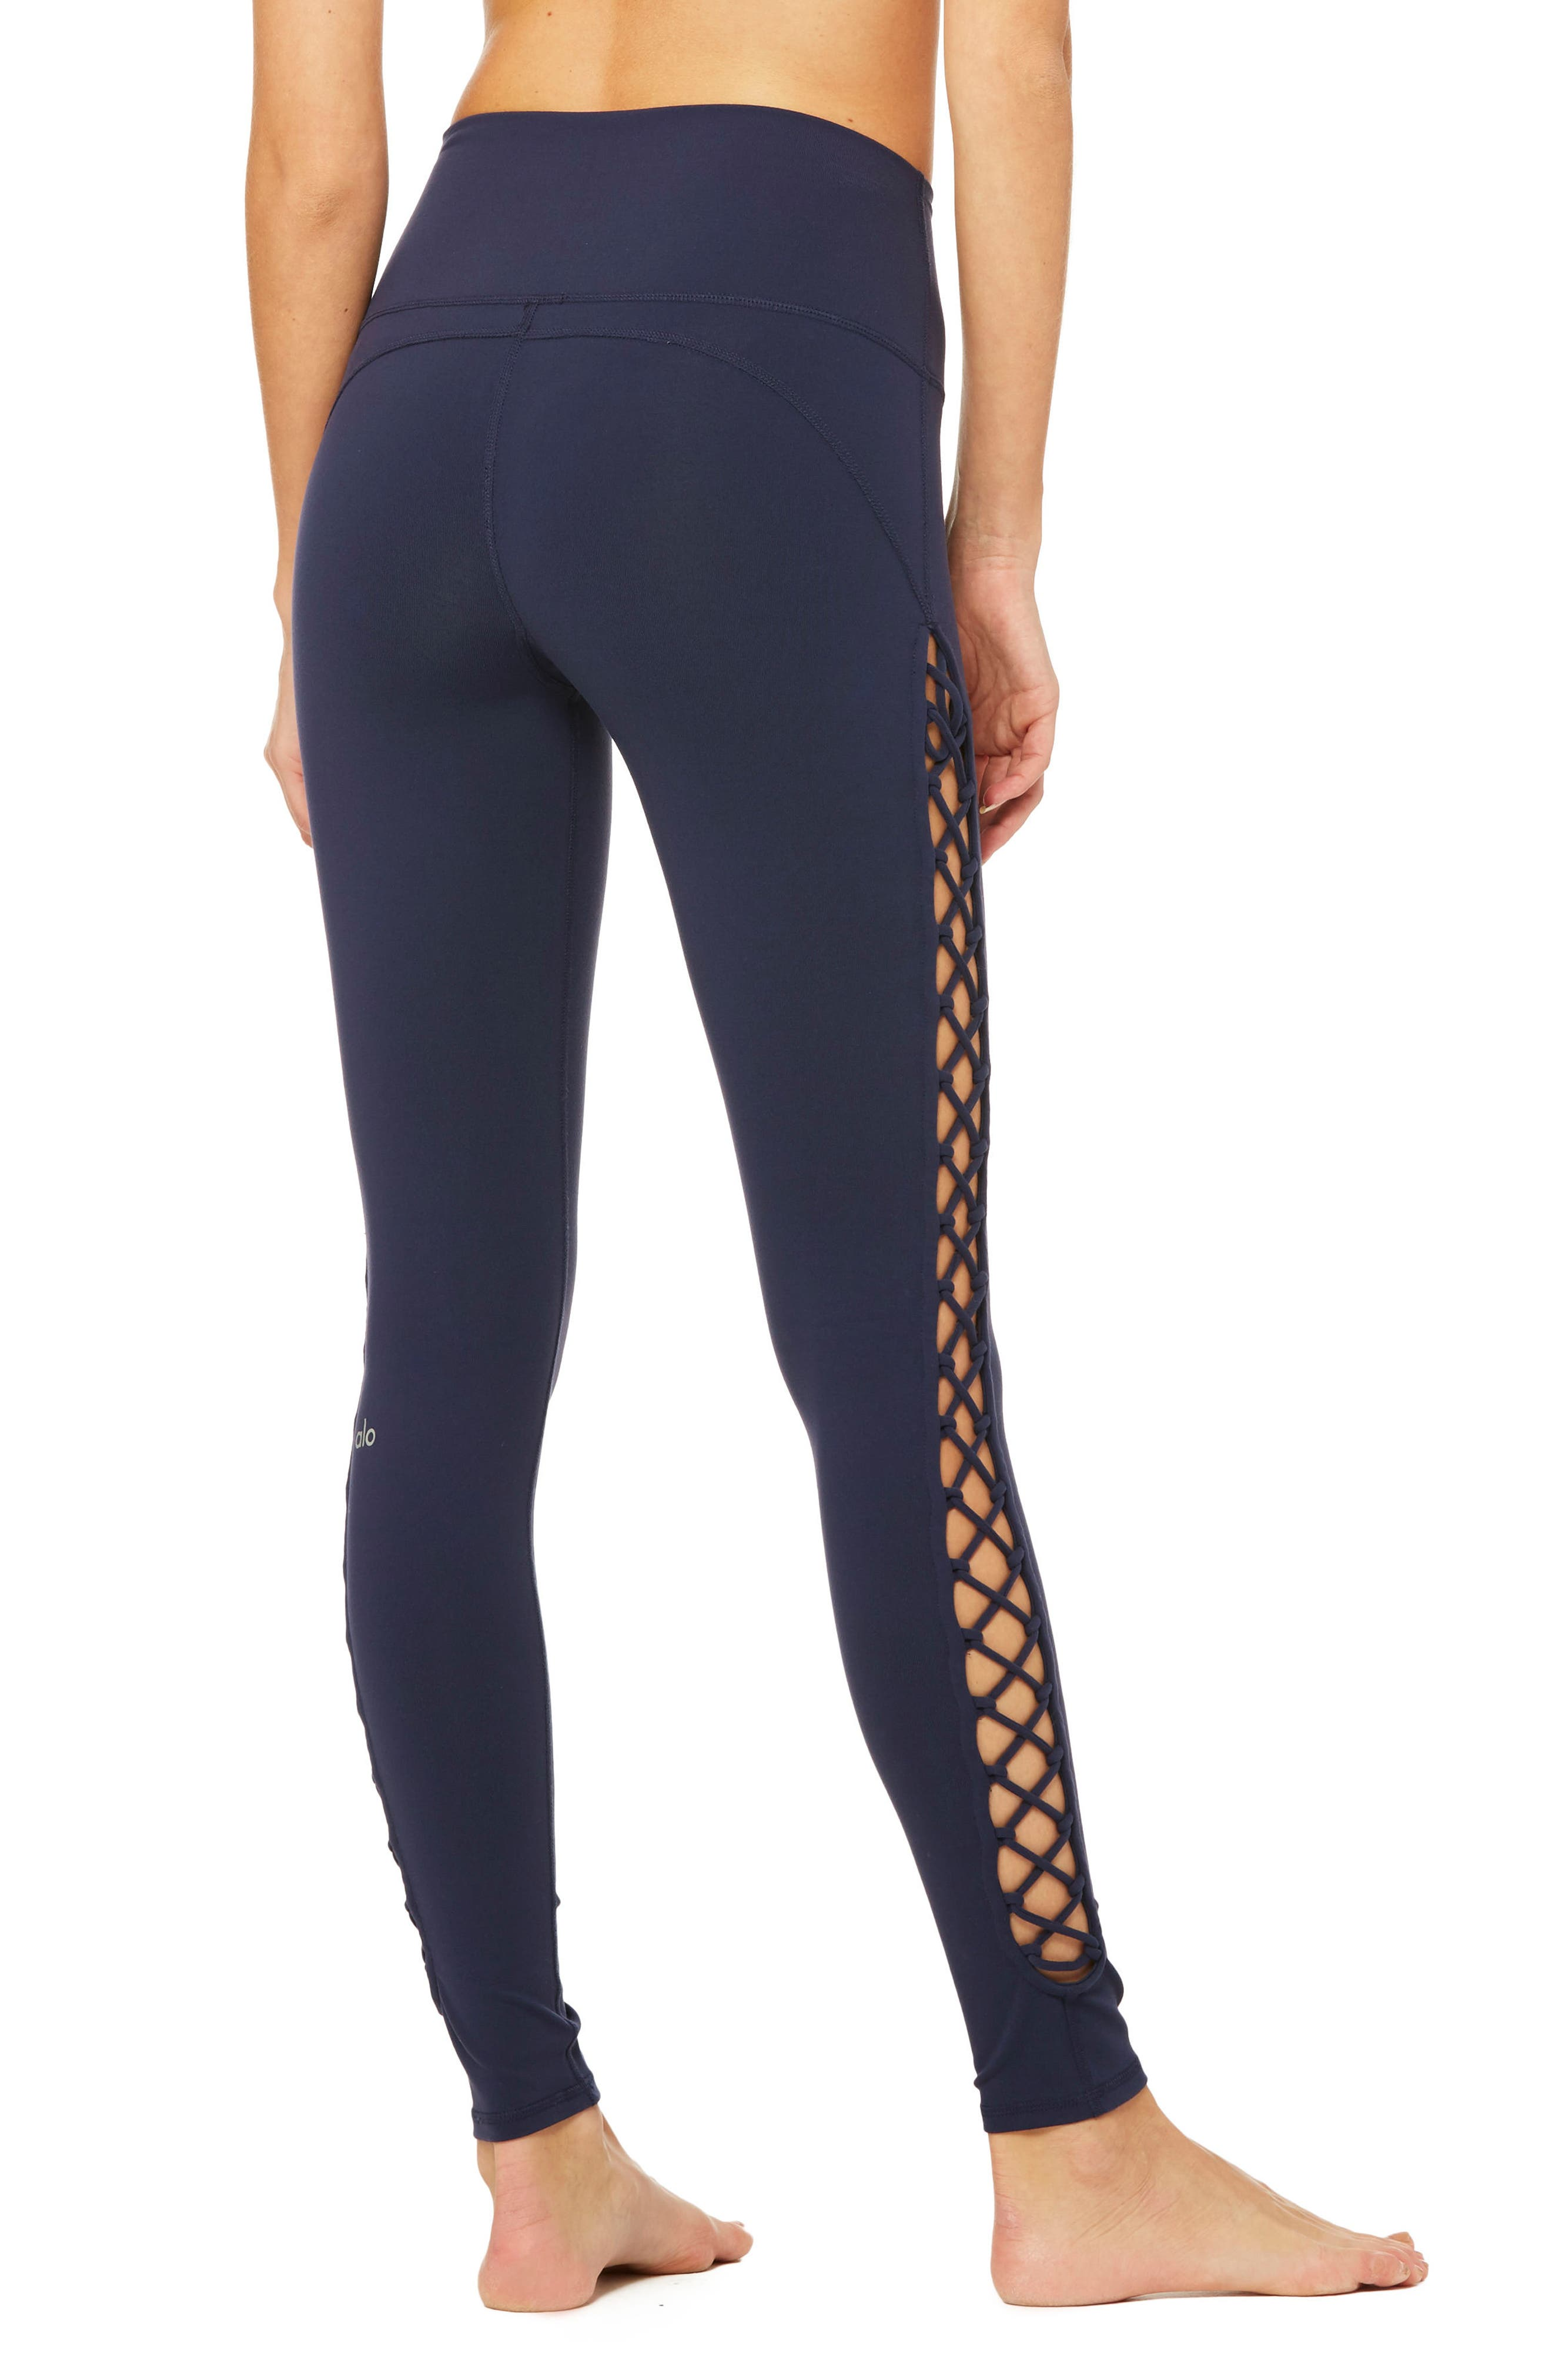 Relaxed Fit Yoga Clothes: Yogawear and Yoga Apparel | Nordstrom